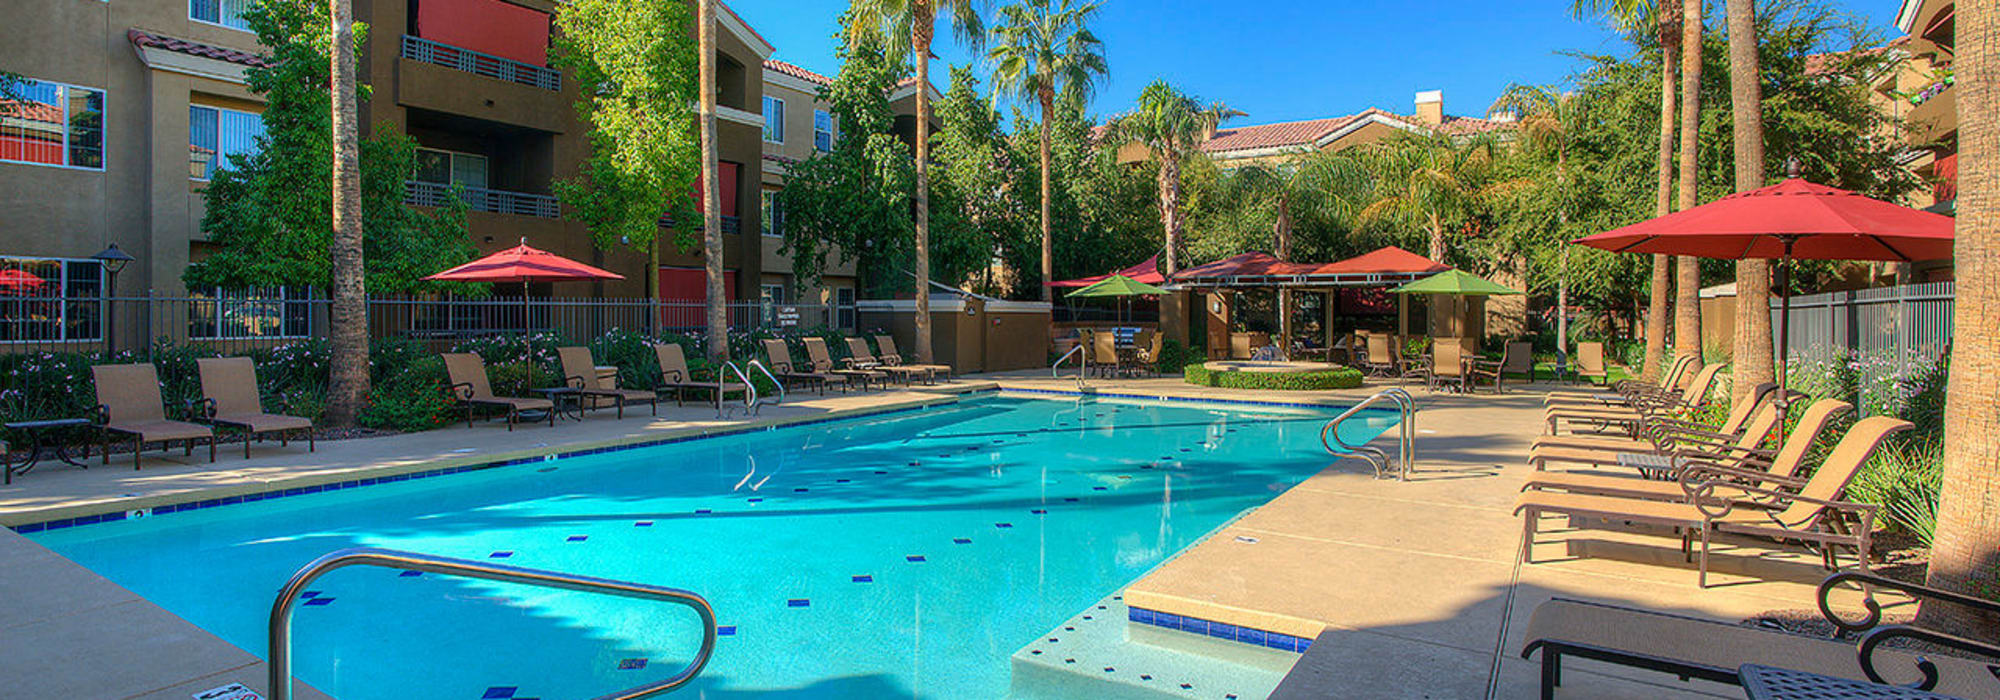 Beautiful resort-style pool with patio seating at Park on Bell in Phoenix, Arizona